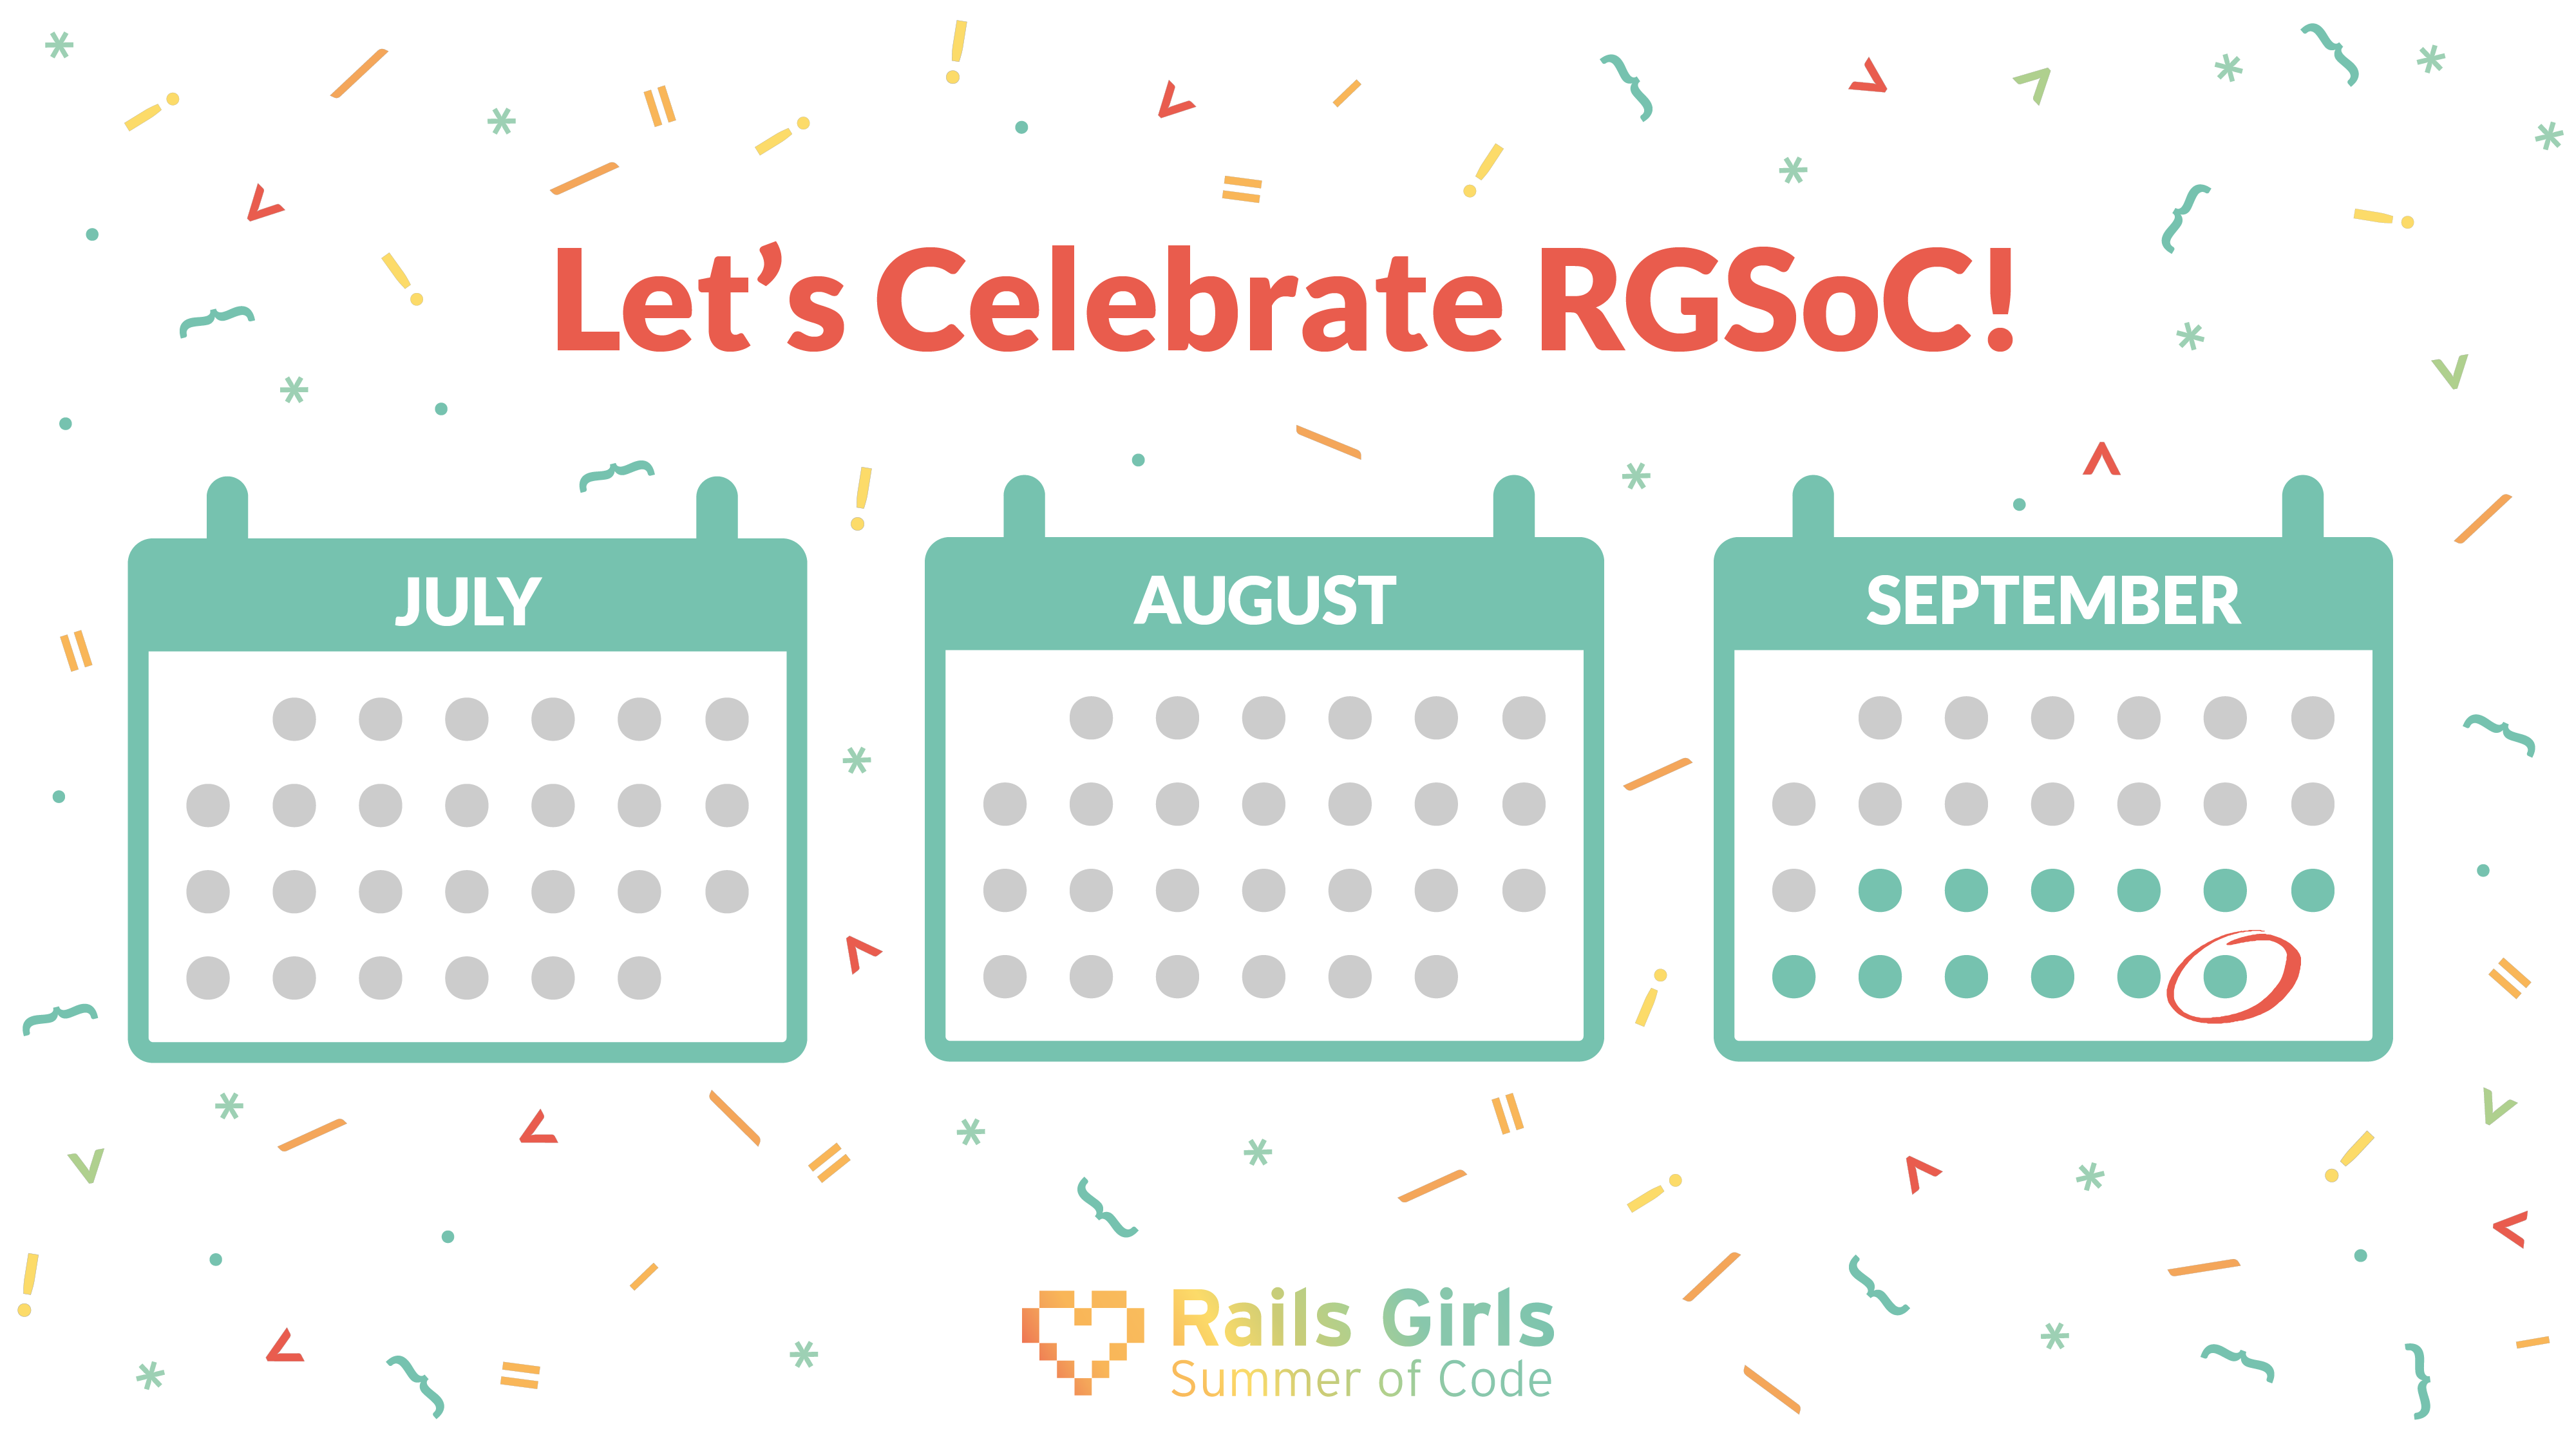 Let's celebrate RGSoC 2018 all over the world!